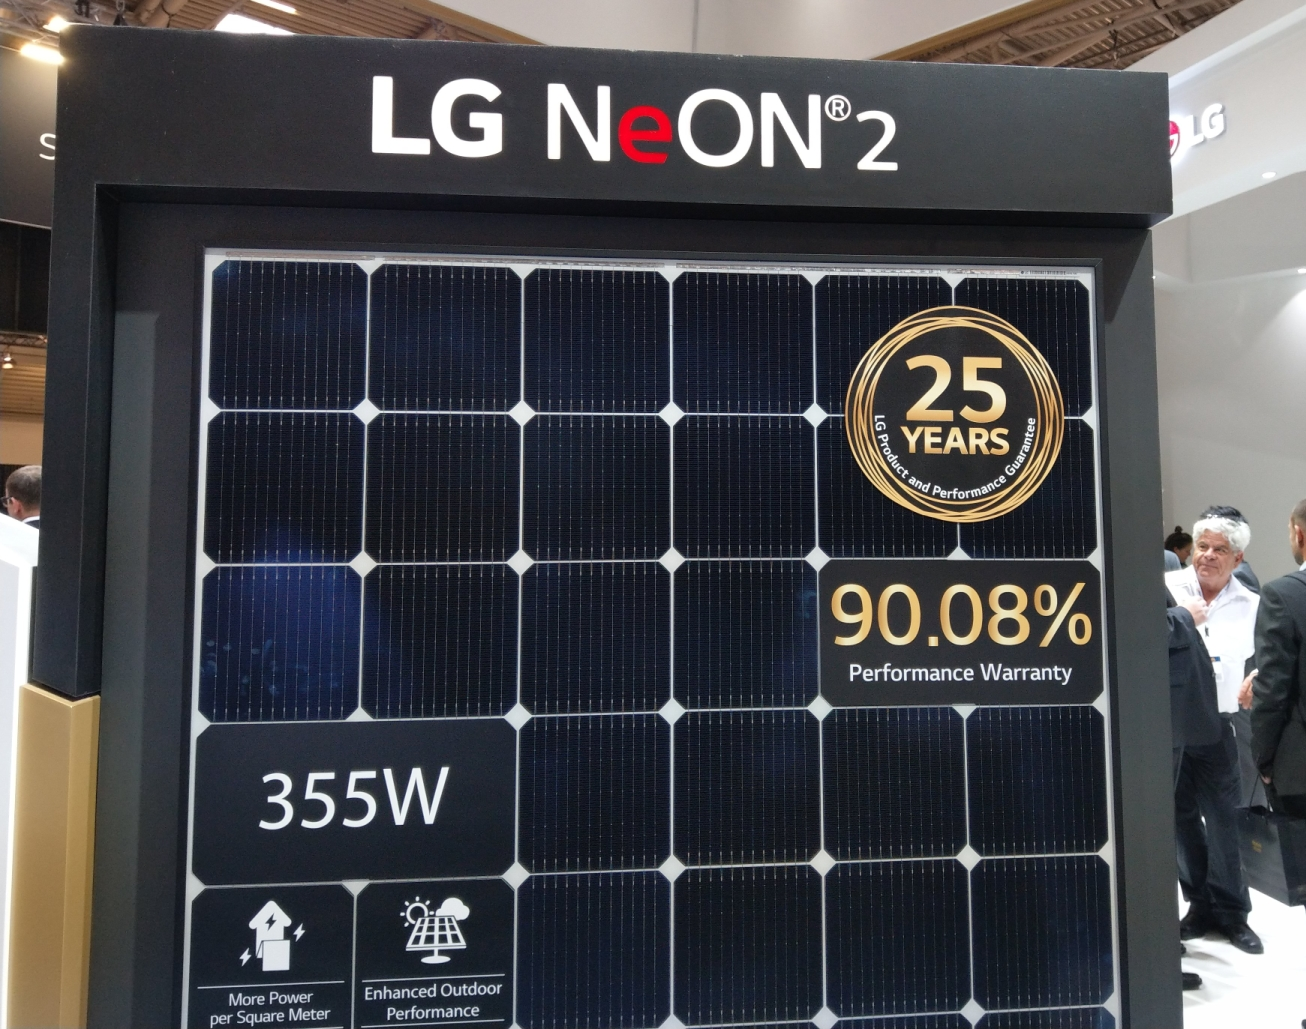 The new V5 series LG Neon 2 high performance solar panels with up to 20.7% efficiency - InterSolar 2019